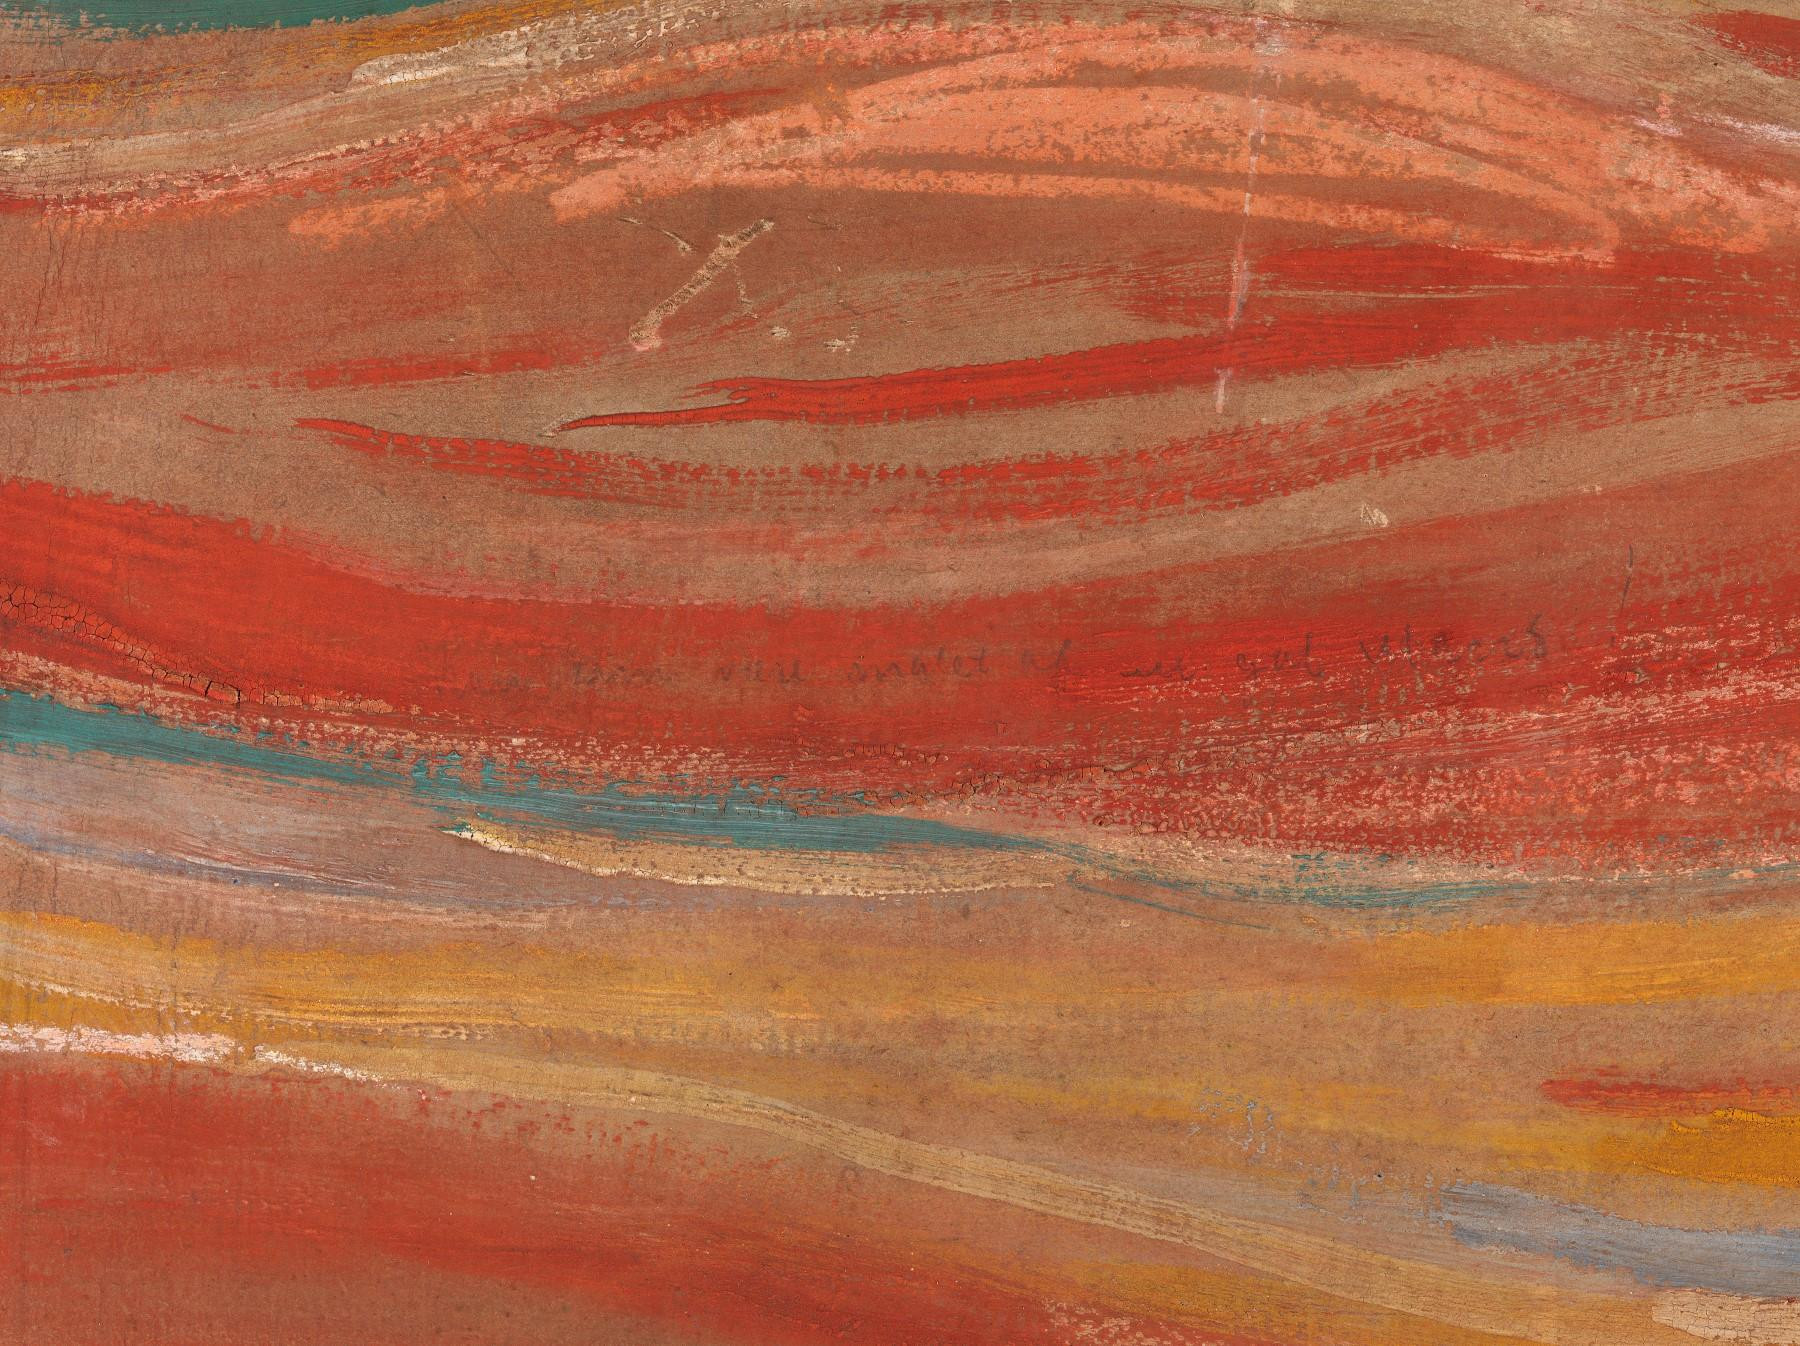 """Researchers look closer at inscription on Evard Munch's iconic painting, """"The Scream"""